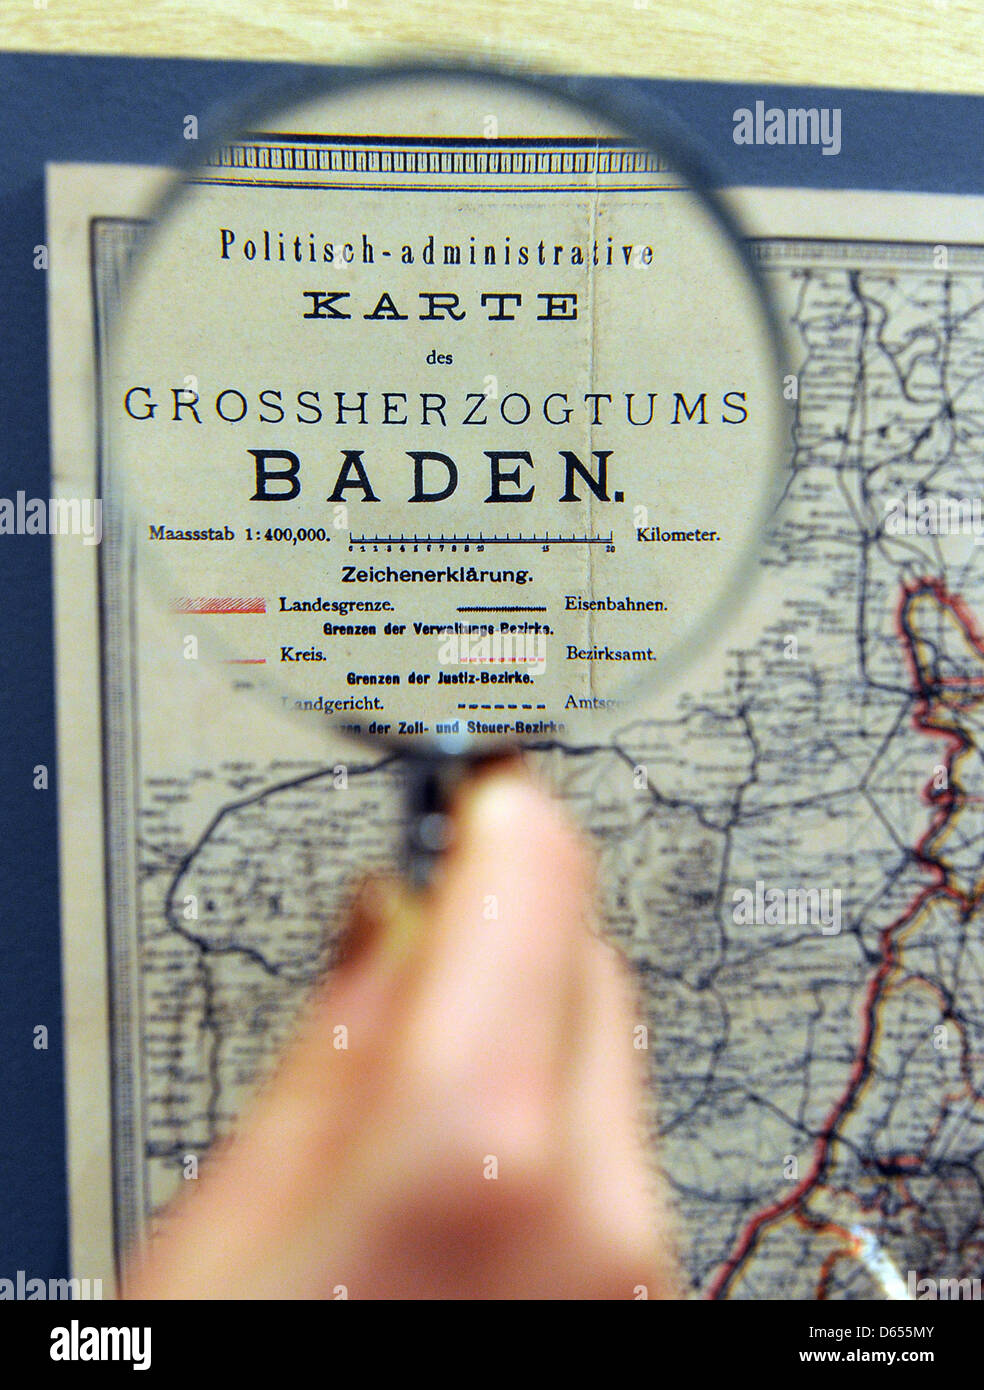 Map Of Germany Karlsruhe Baden.A Visitors Of The Baden State Museum Observes A Map Of Grand Duchy